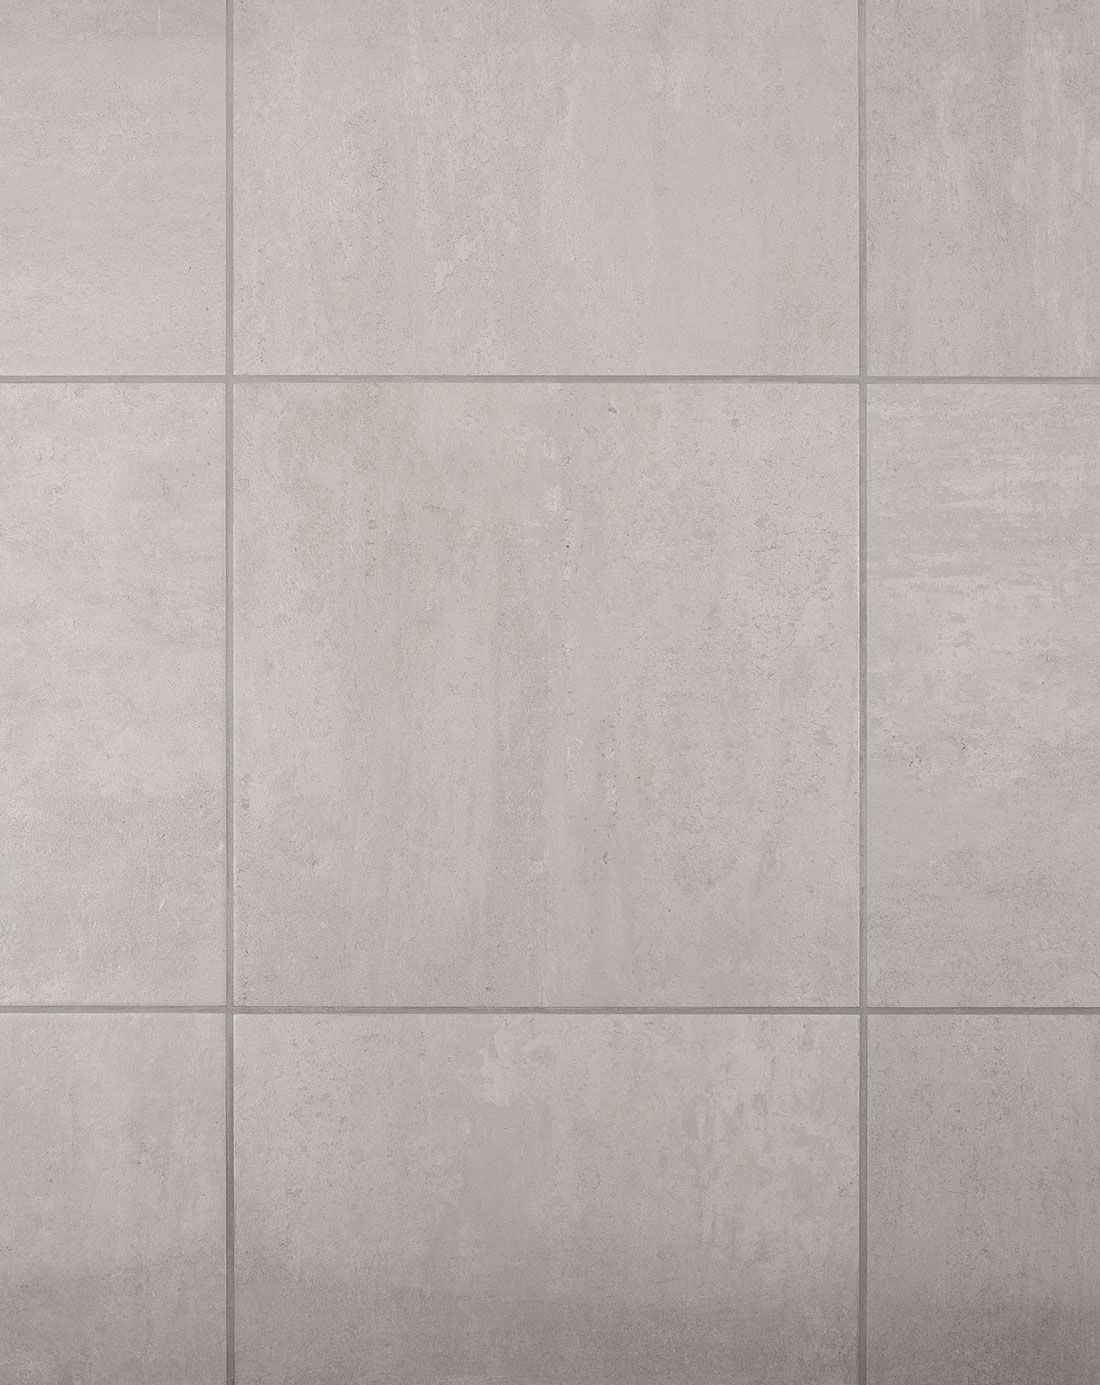 Concept Grigio Kitchen Floor Tile A Light Grey Coloured Porcelain With Matt Stone Finish Effect Slightly Textured Surface